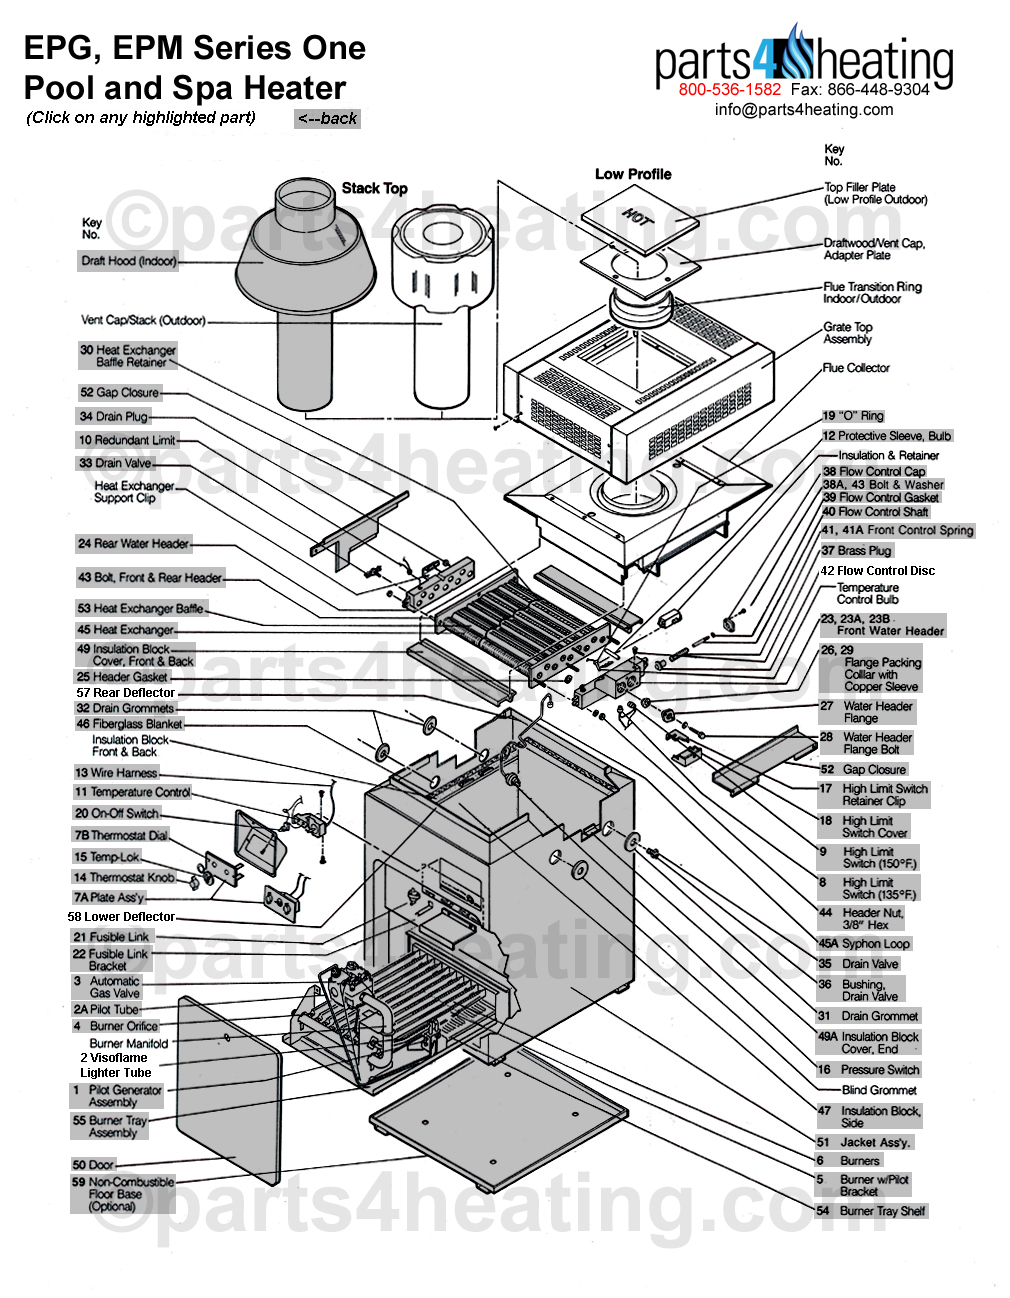 teledyne laars epg epm series one pool and spa heater rh parts4heating com Laars Pennant Boiler Manual laars boiler wiring diagram